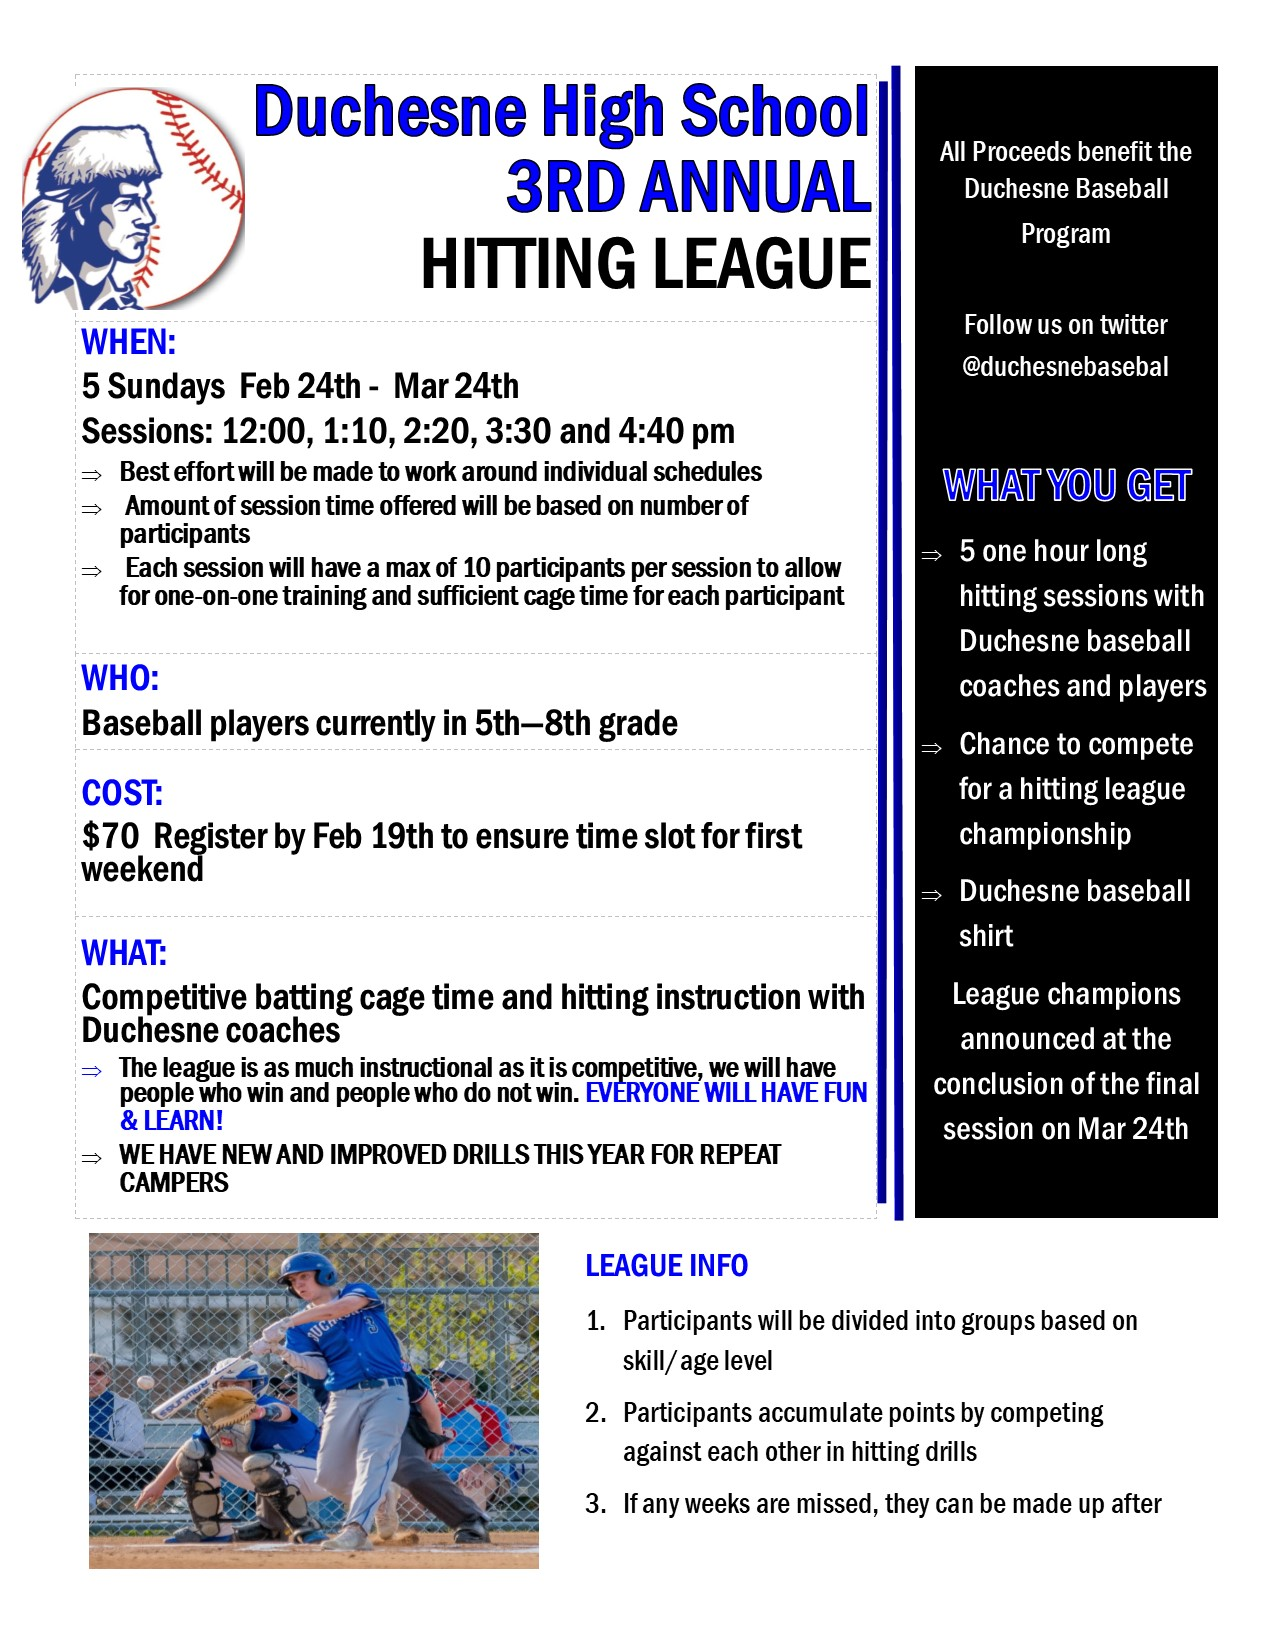 new hitting league